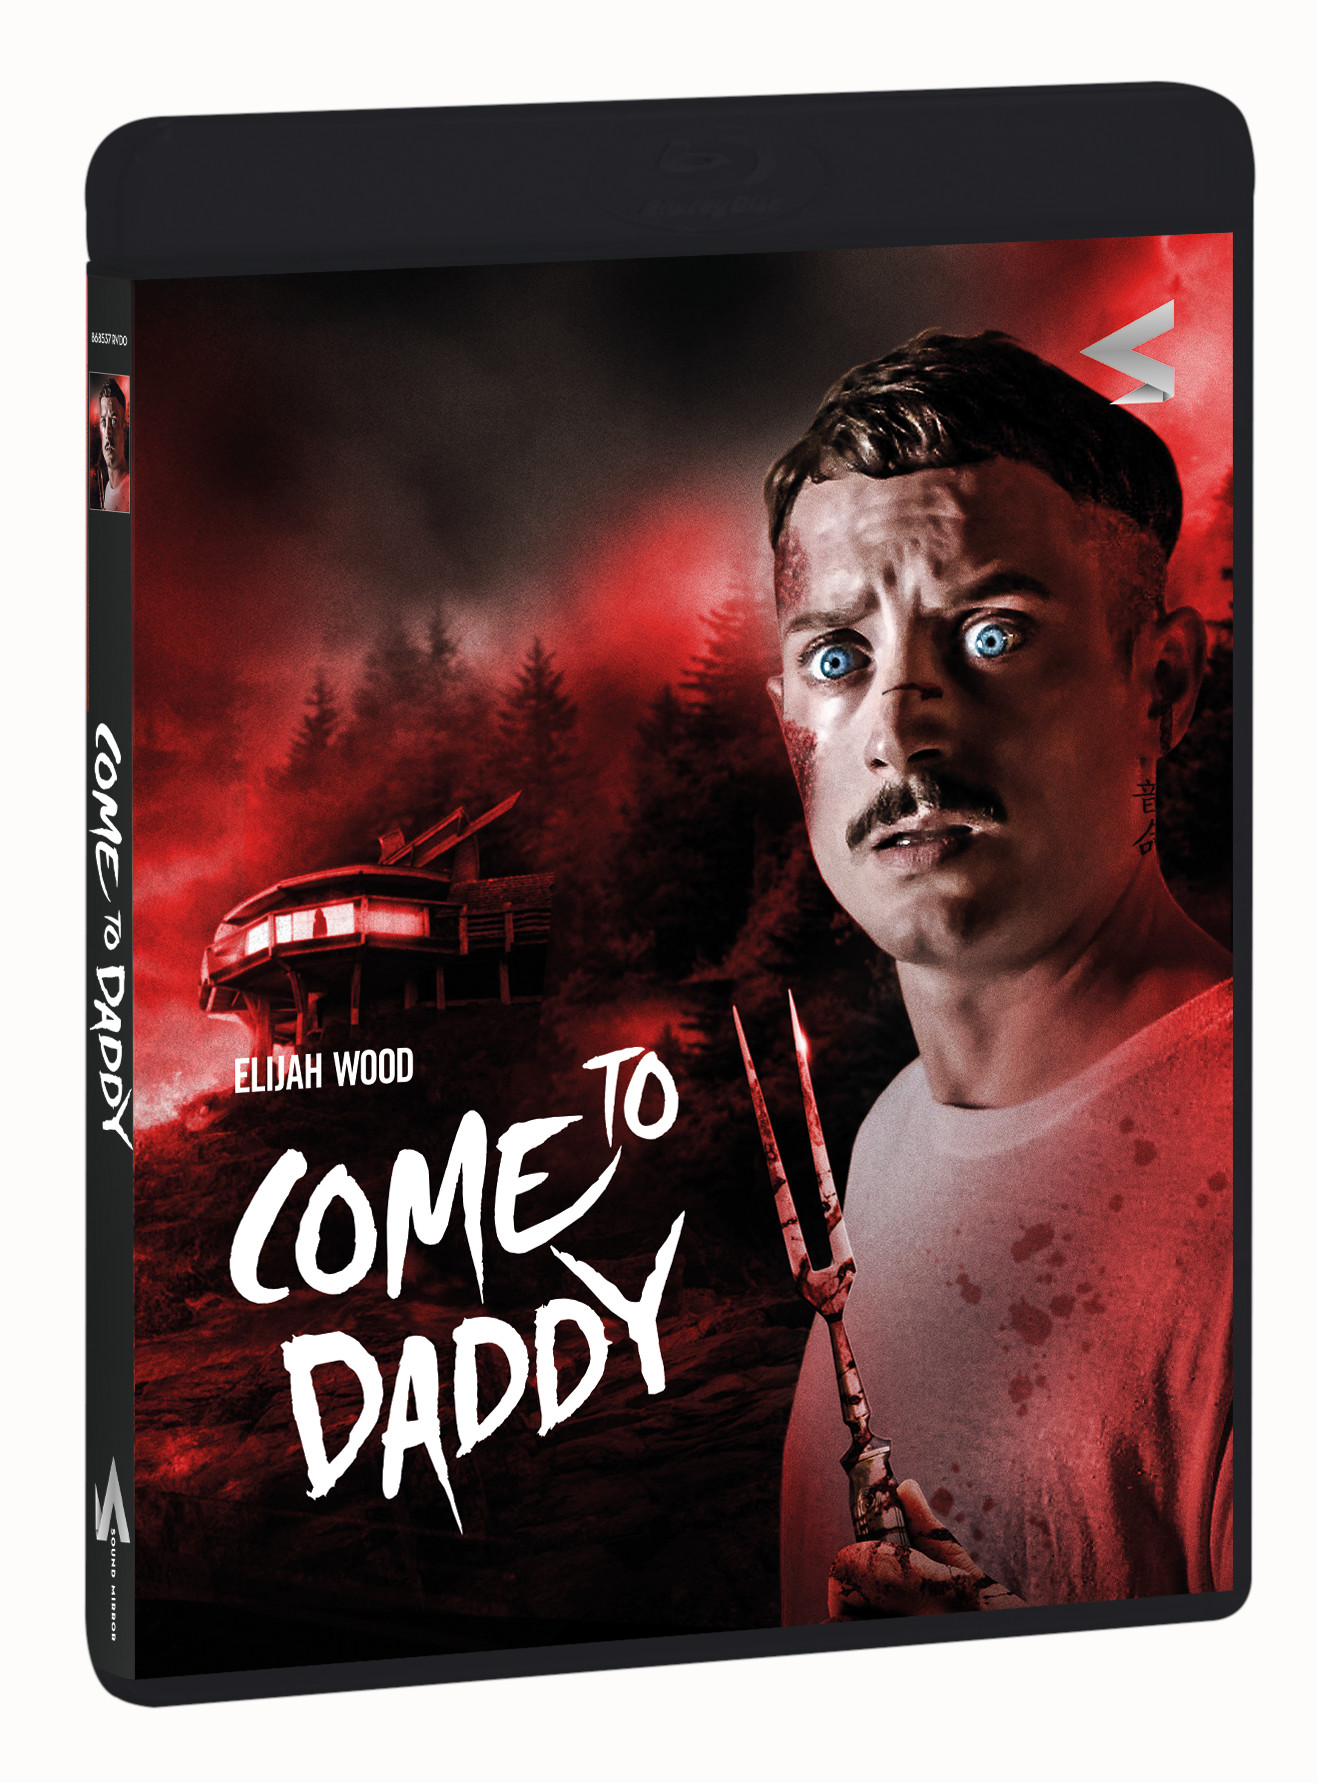 COME TO DADDY (BLU-RAY+DVD)